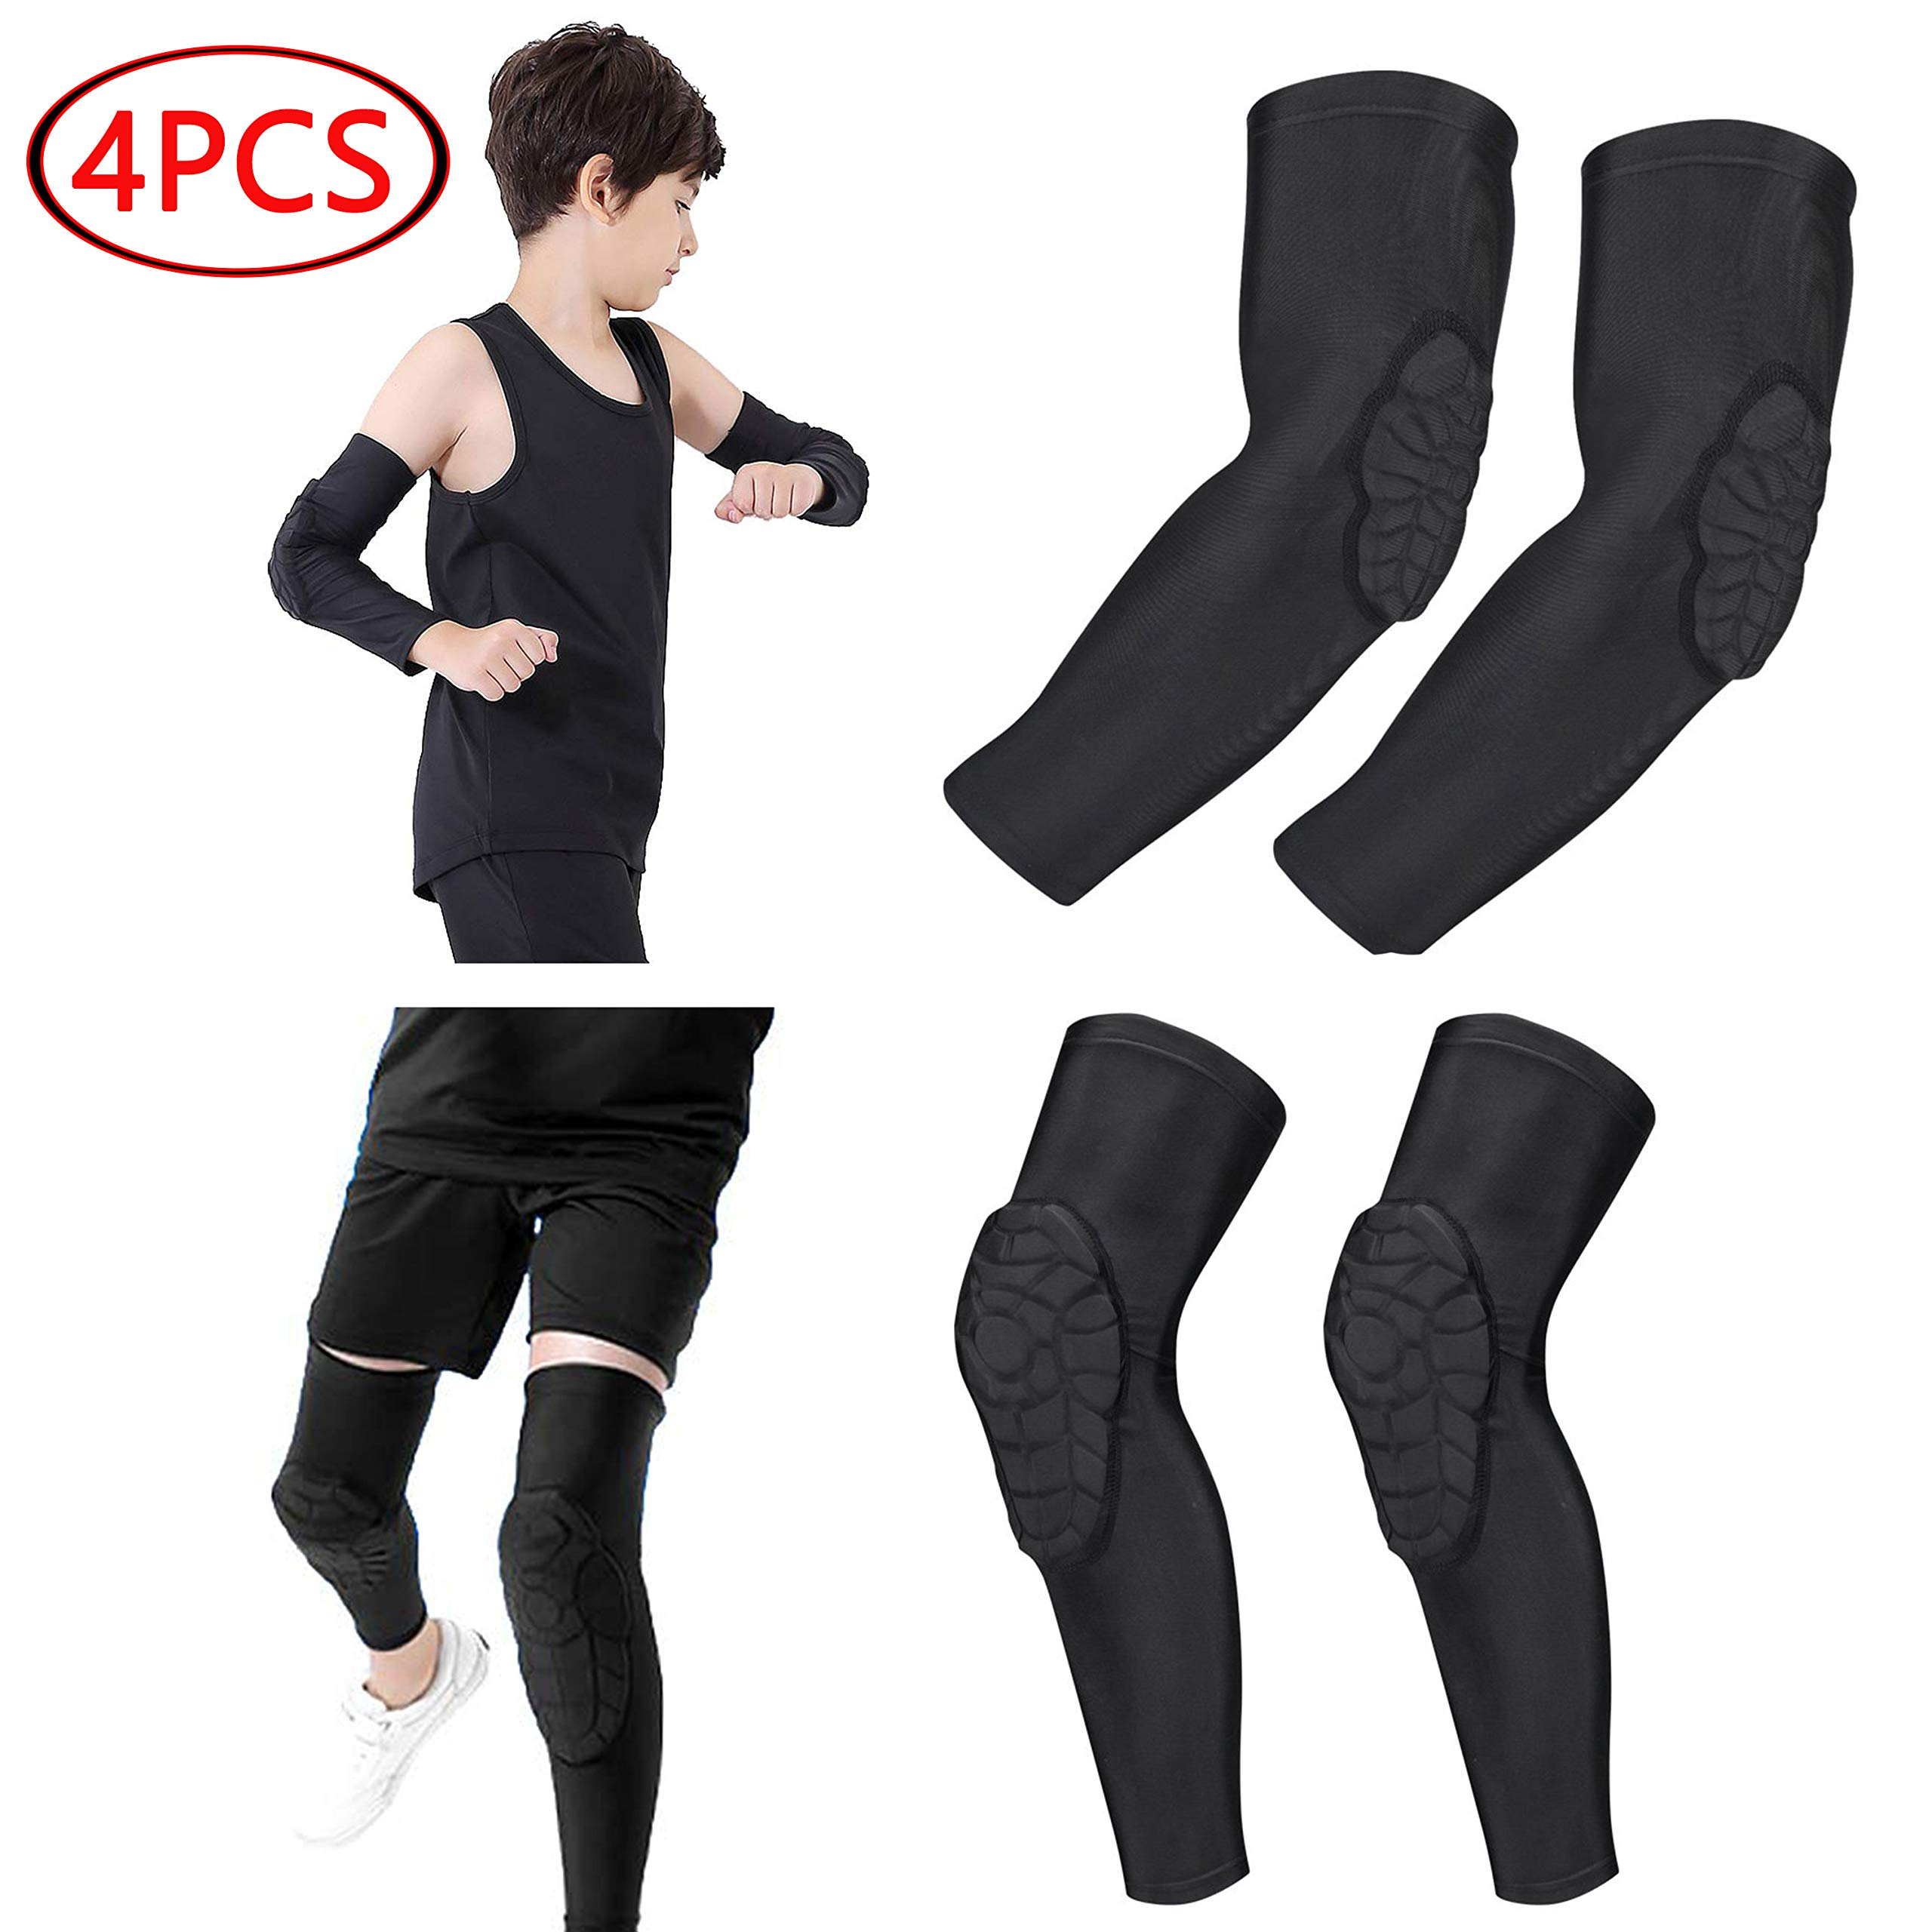 Rejolly Children 2 Pairs Elbow & Knee Compression Sleeves Honeycomb Pads Guards Sports Protective Gear for Cycling Football Volleyball Baseball for Youth Girls Boys